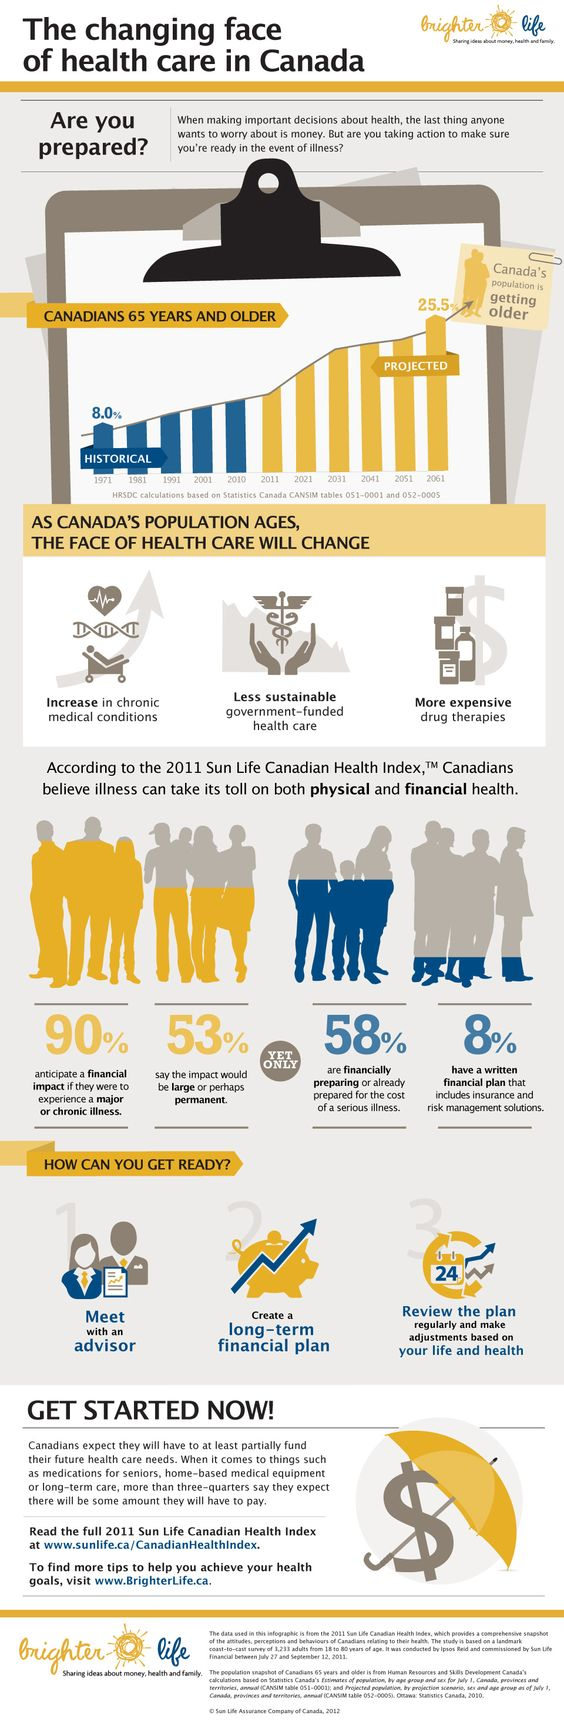 Is the Canadian government doing enough to ensure that work environments are safe and healthy?